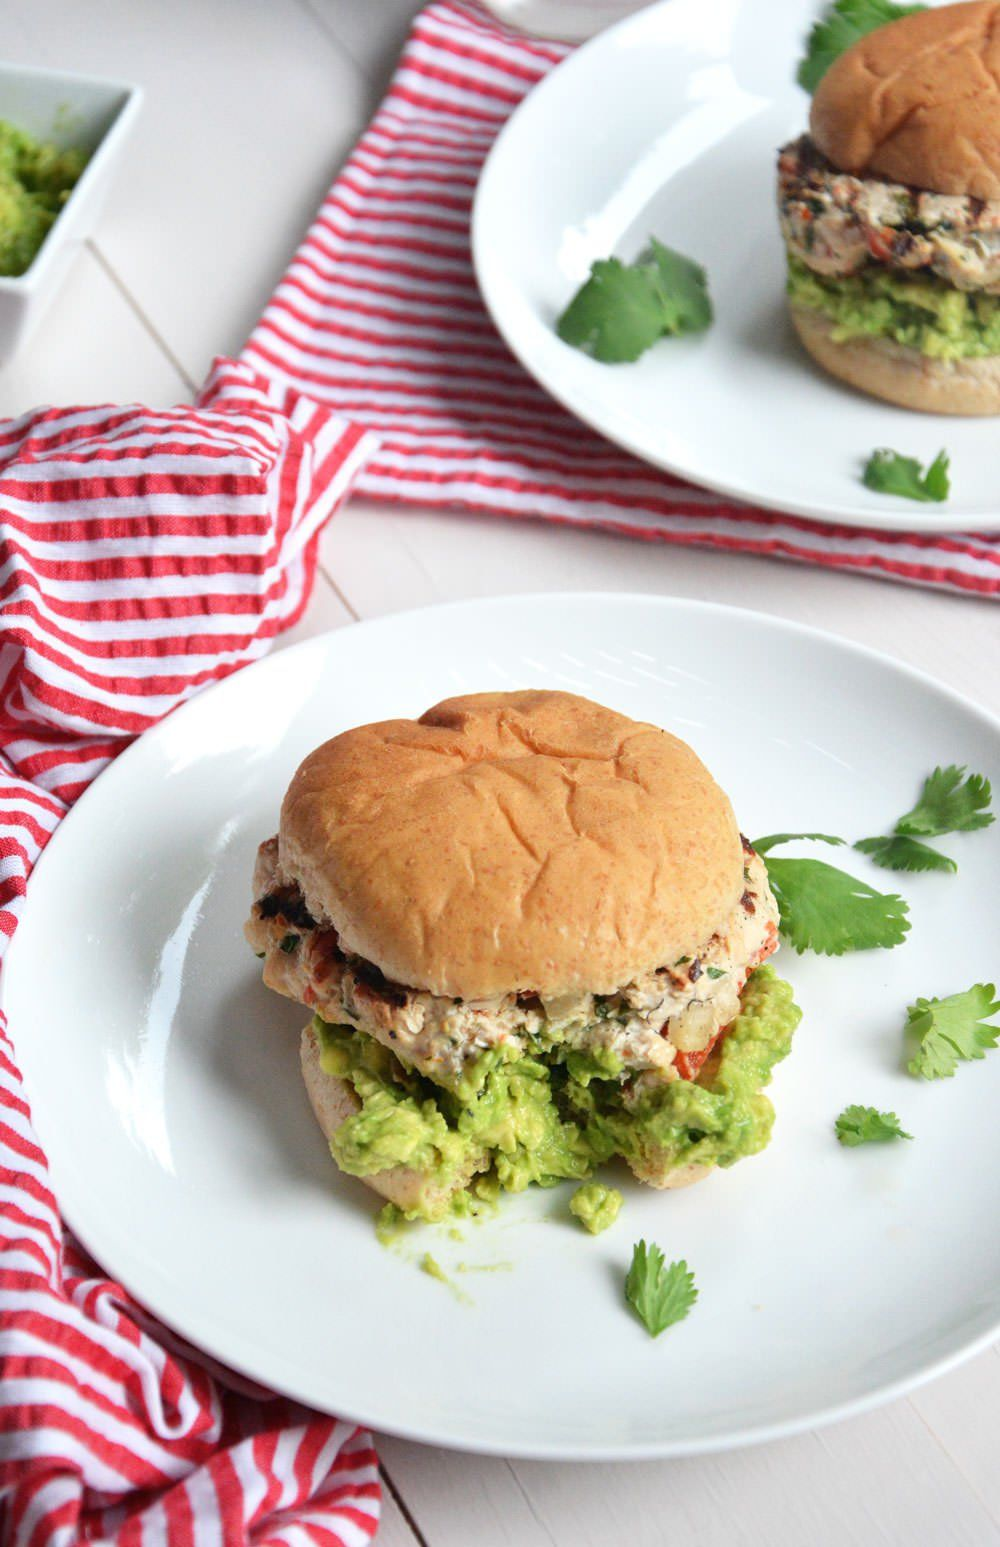 Avocado And Chile Lime Chicken Burgers Recipe With Images